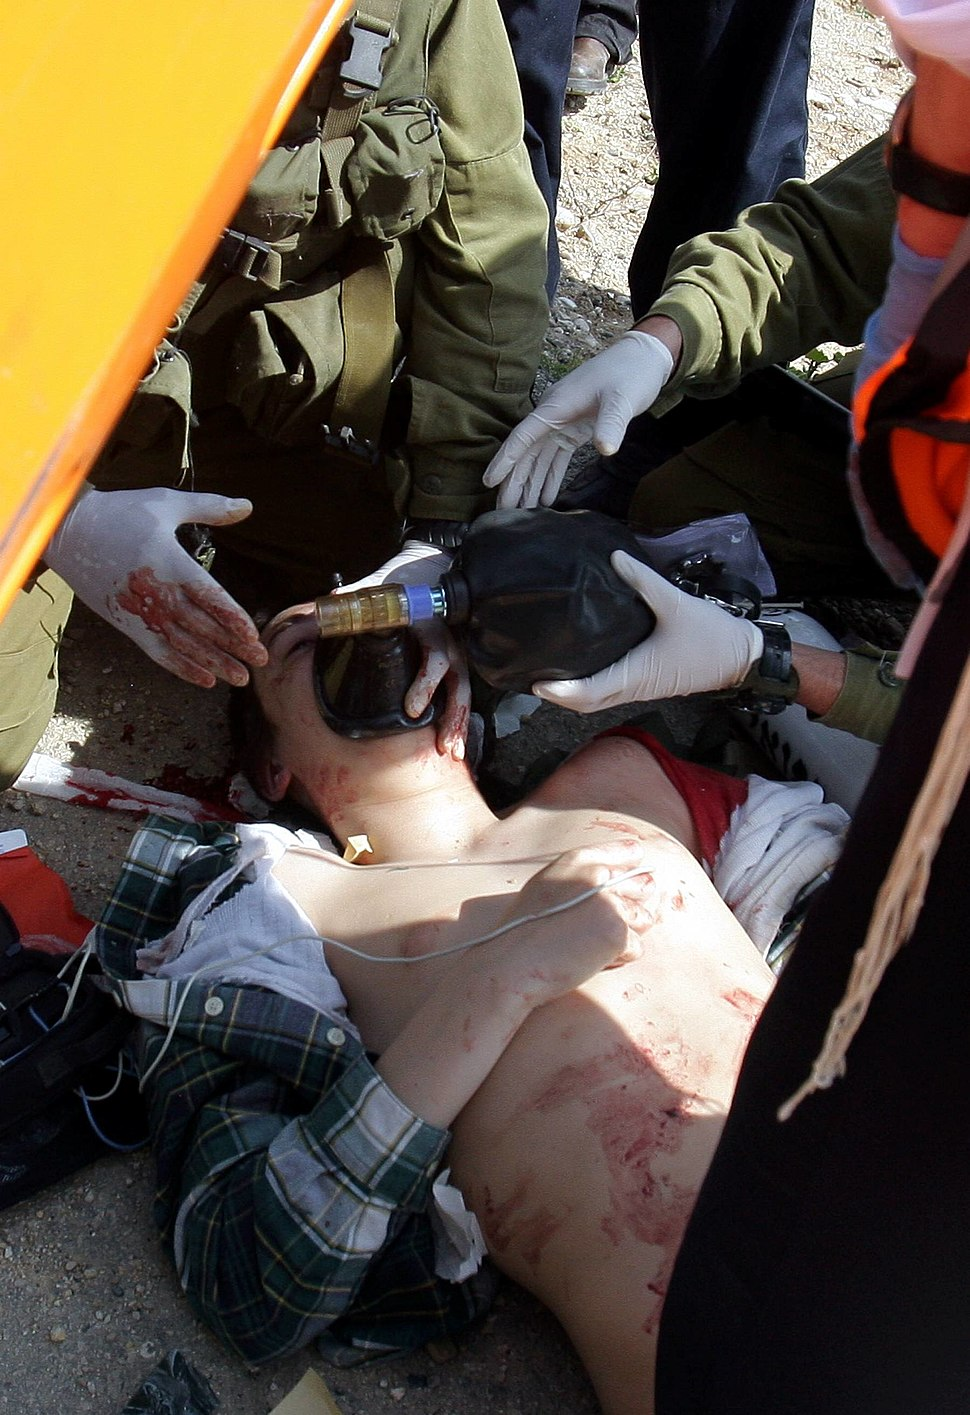 Fatally wounded Israeli school boy